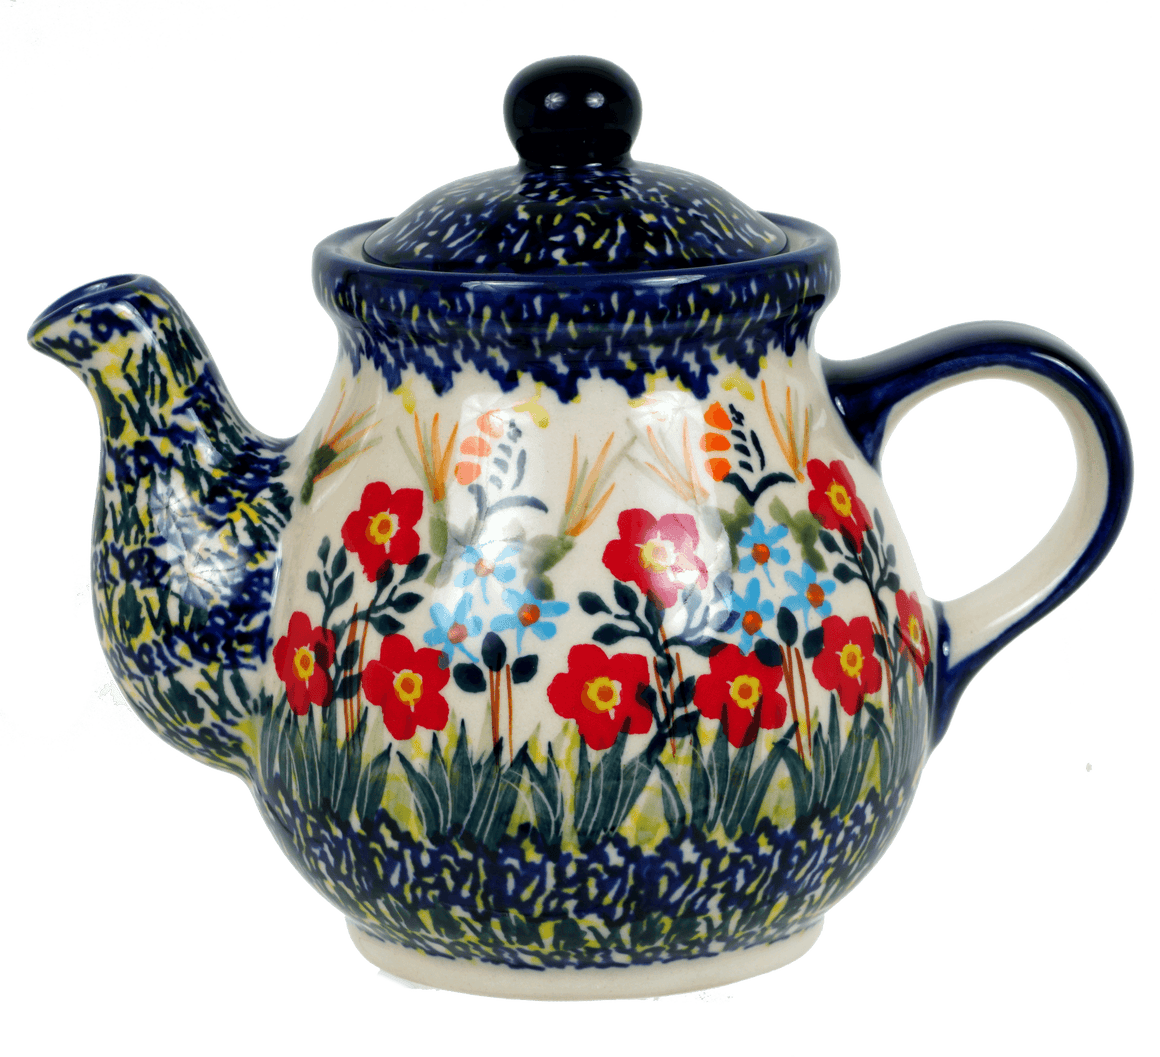 The Teapot for One (Bundled Bouquets)